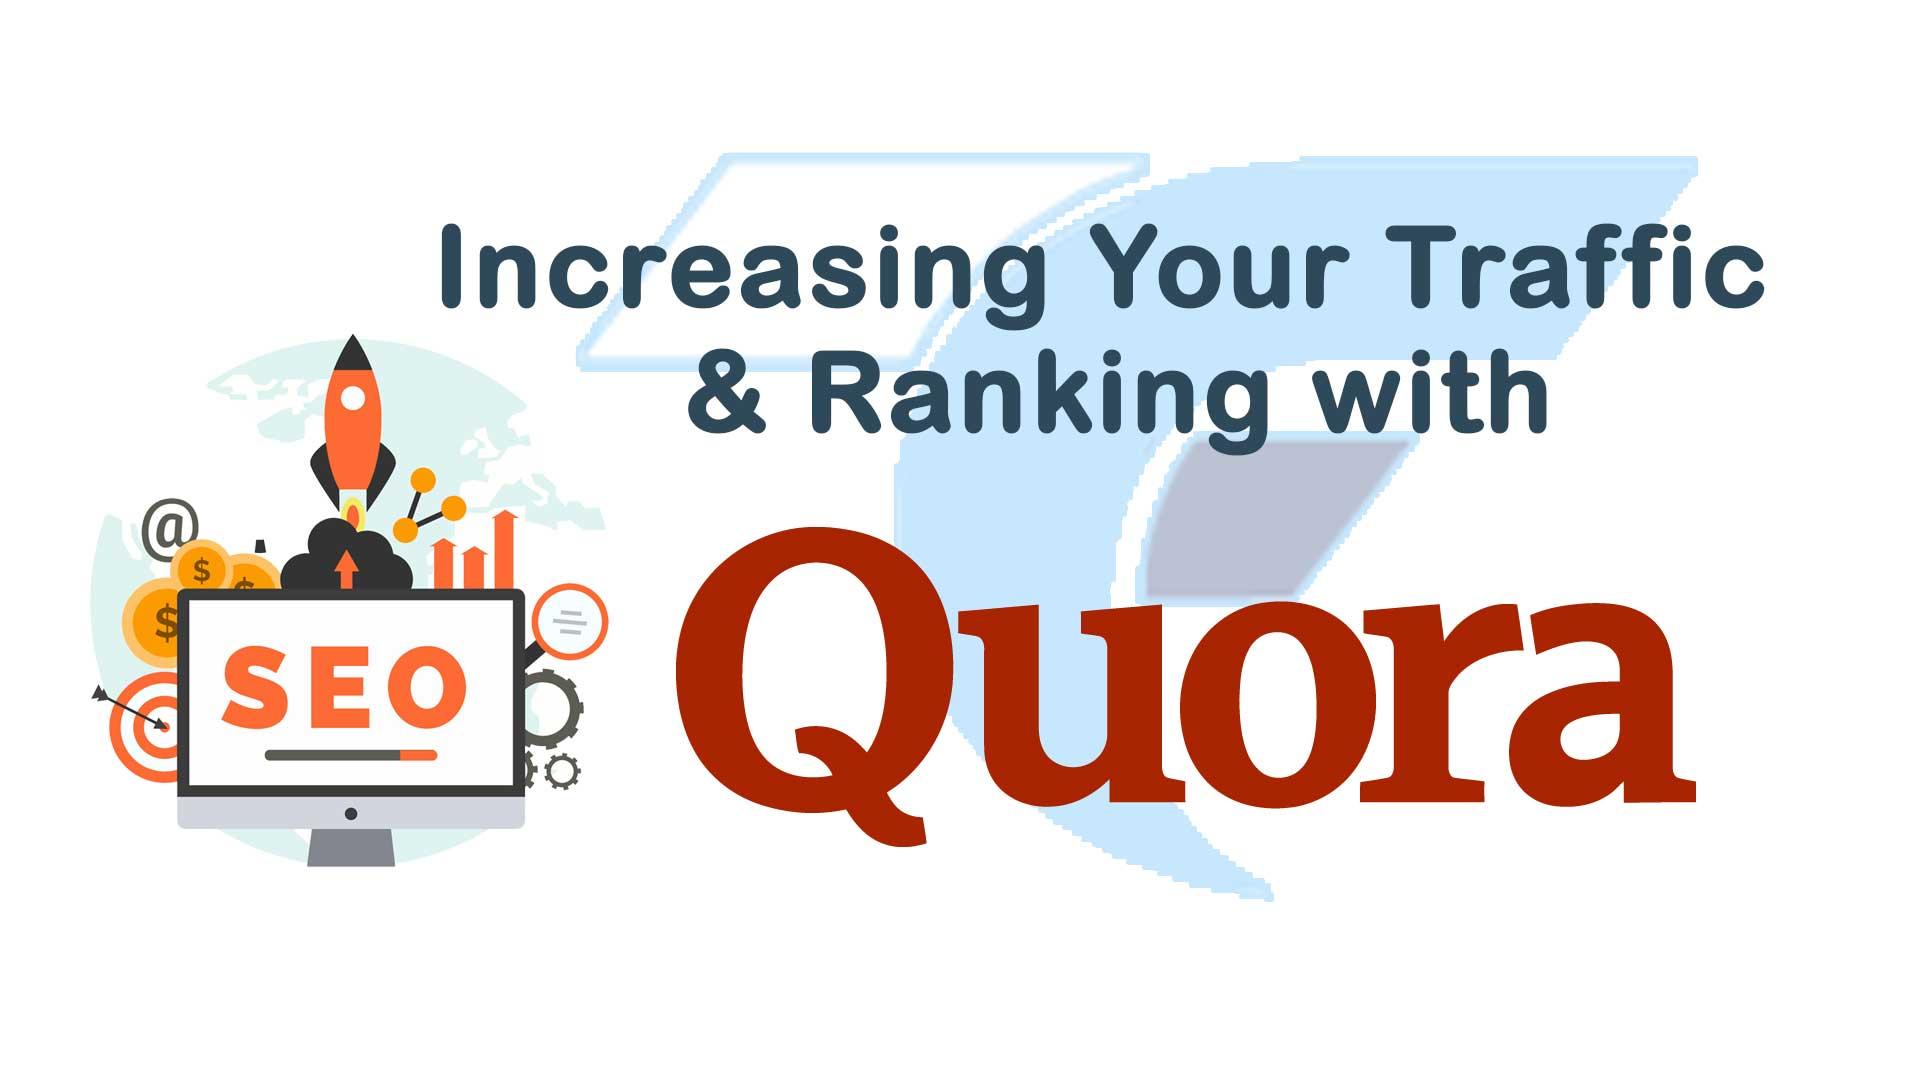 Increasing Your Traffic & Ranking